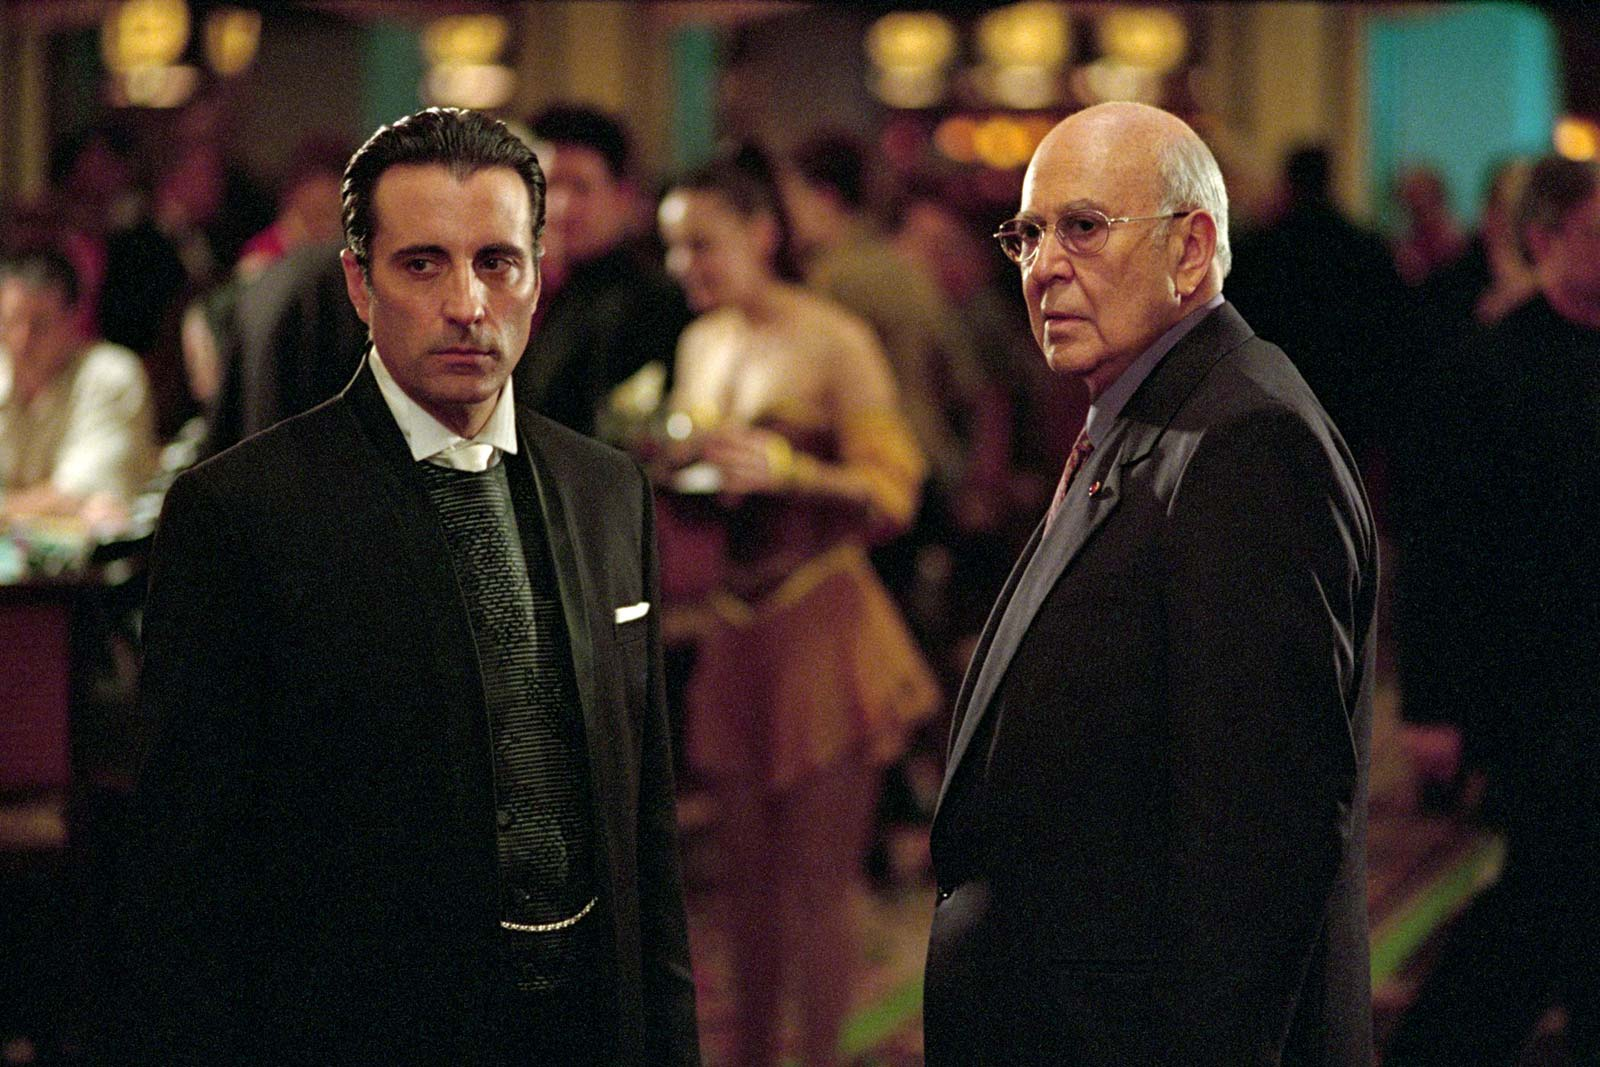 Carl Reiner, Star Of Ocean's Eleven And Toy Story 4, Dies Aged 98